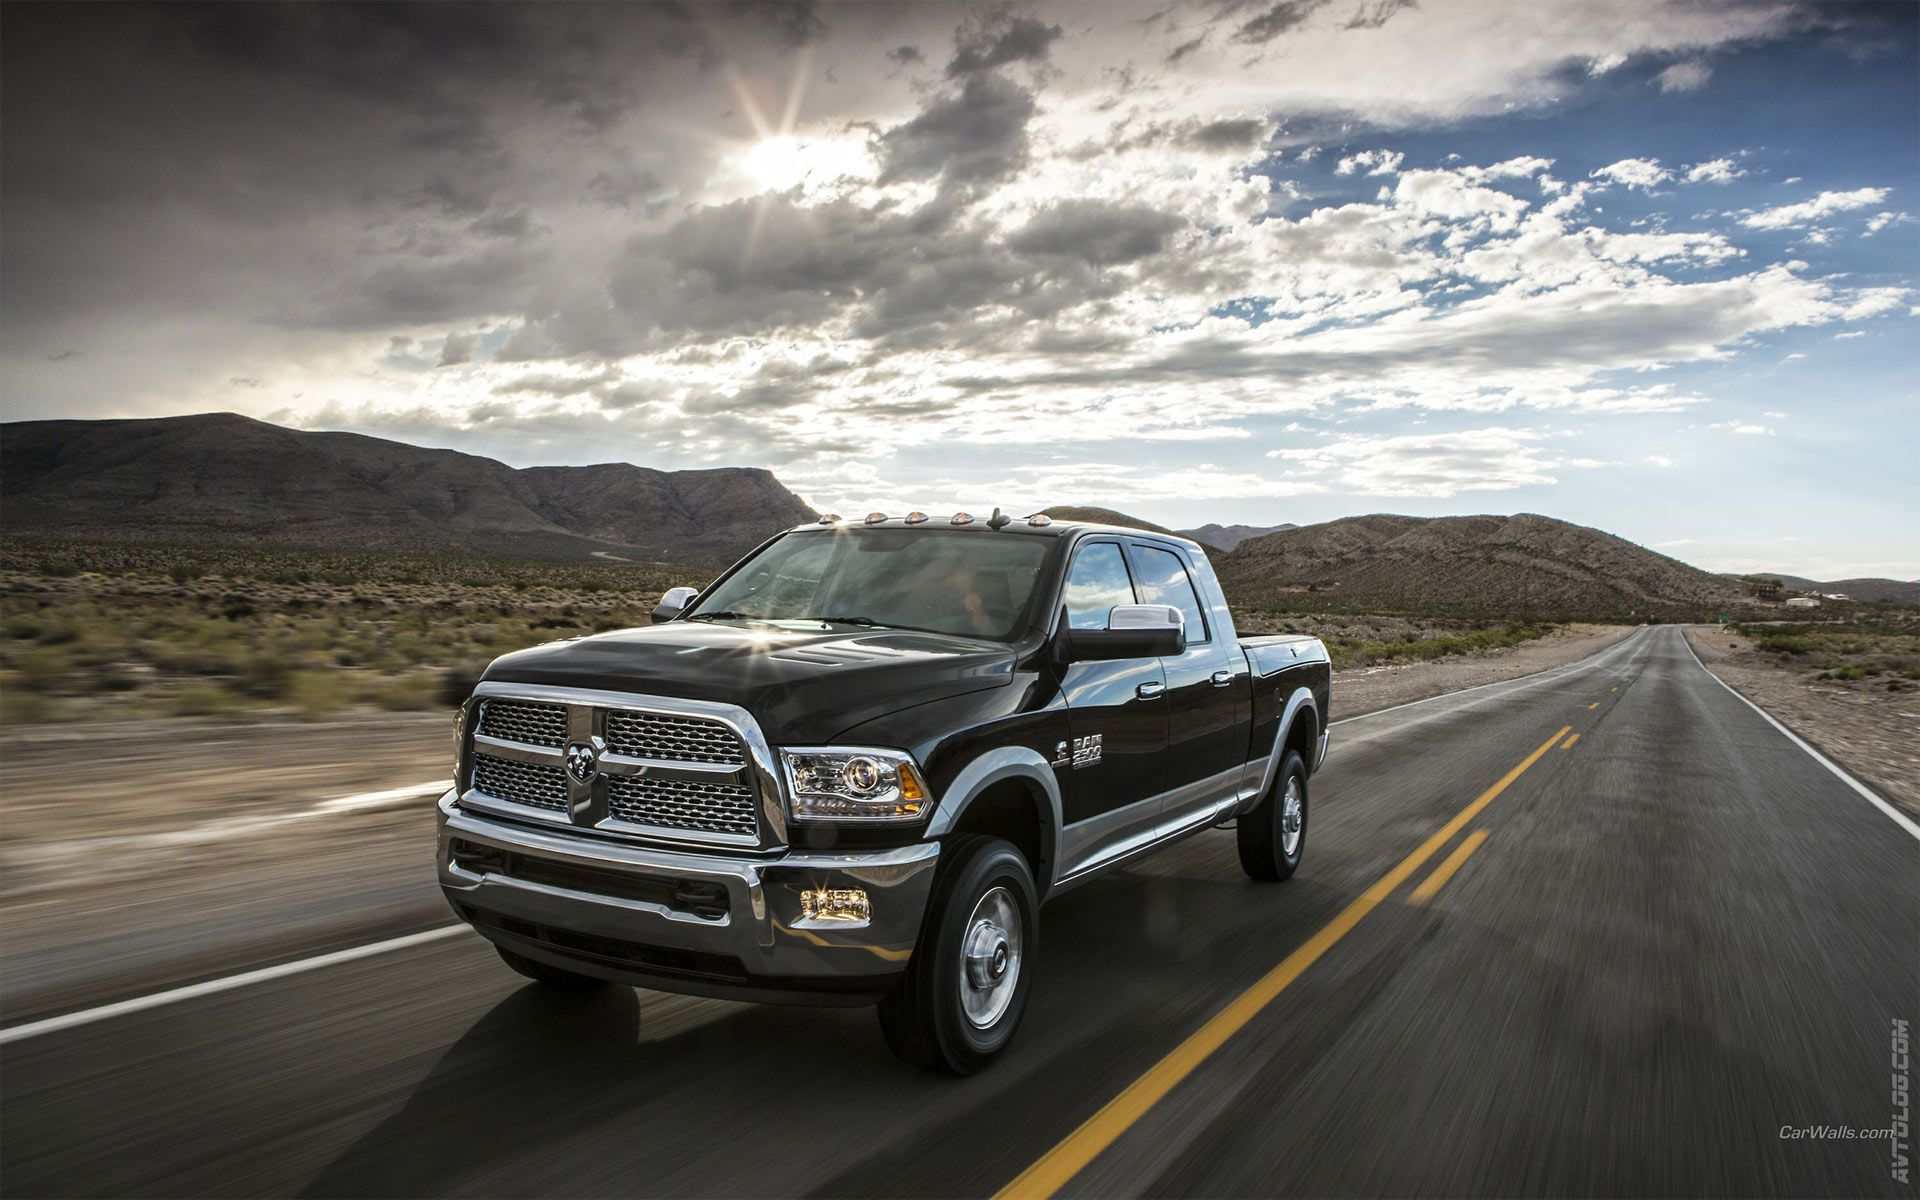 Dodge Ram Wallpapers Dodge Ram 2500 Wallpaper 2014 1920x1200 Download Hd Wallpaper Wallpapertip